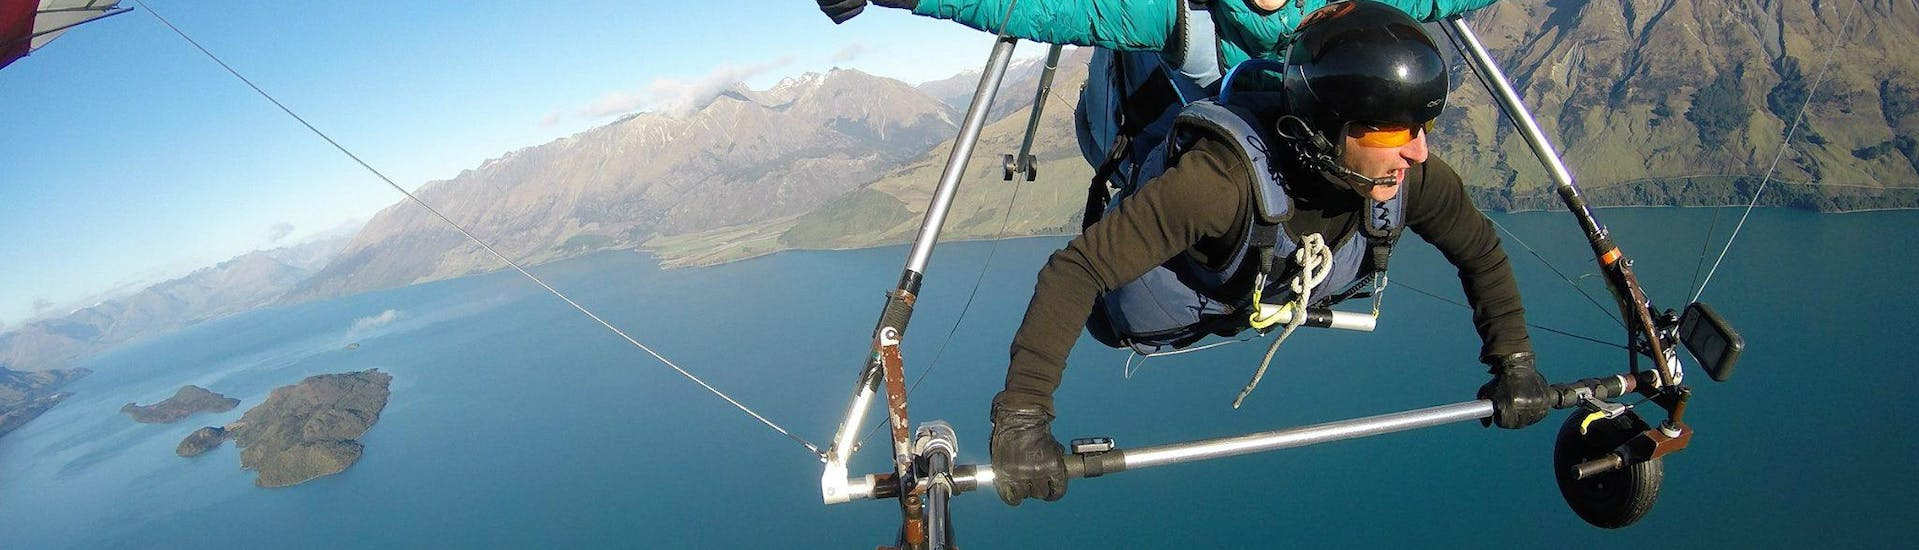 A hang gliding passenger is seemingly enjoying herself while Aerotow Hang Gliding in Queenstown with Skytrek Queenstown.